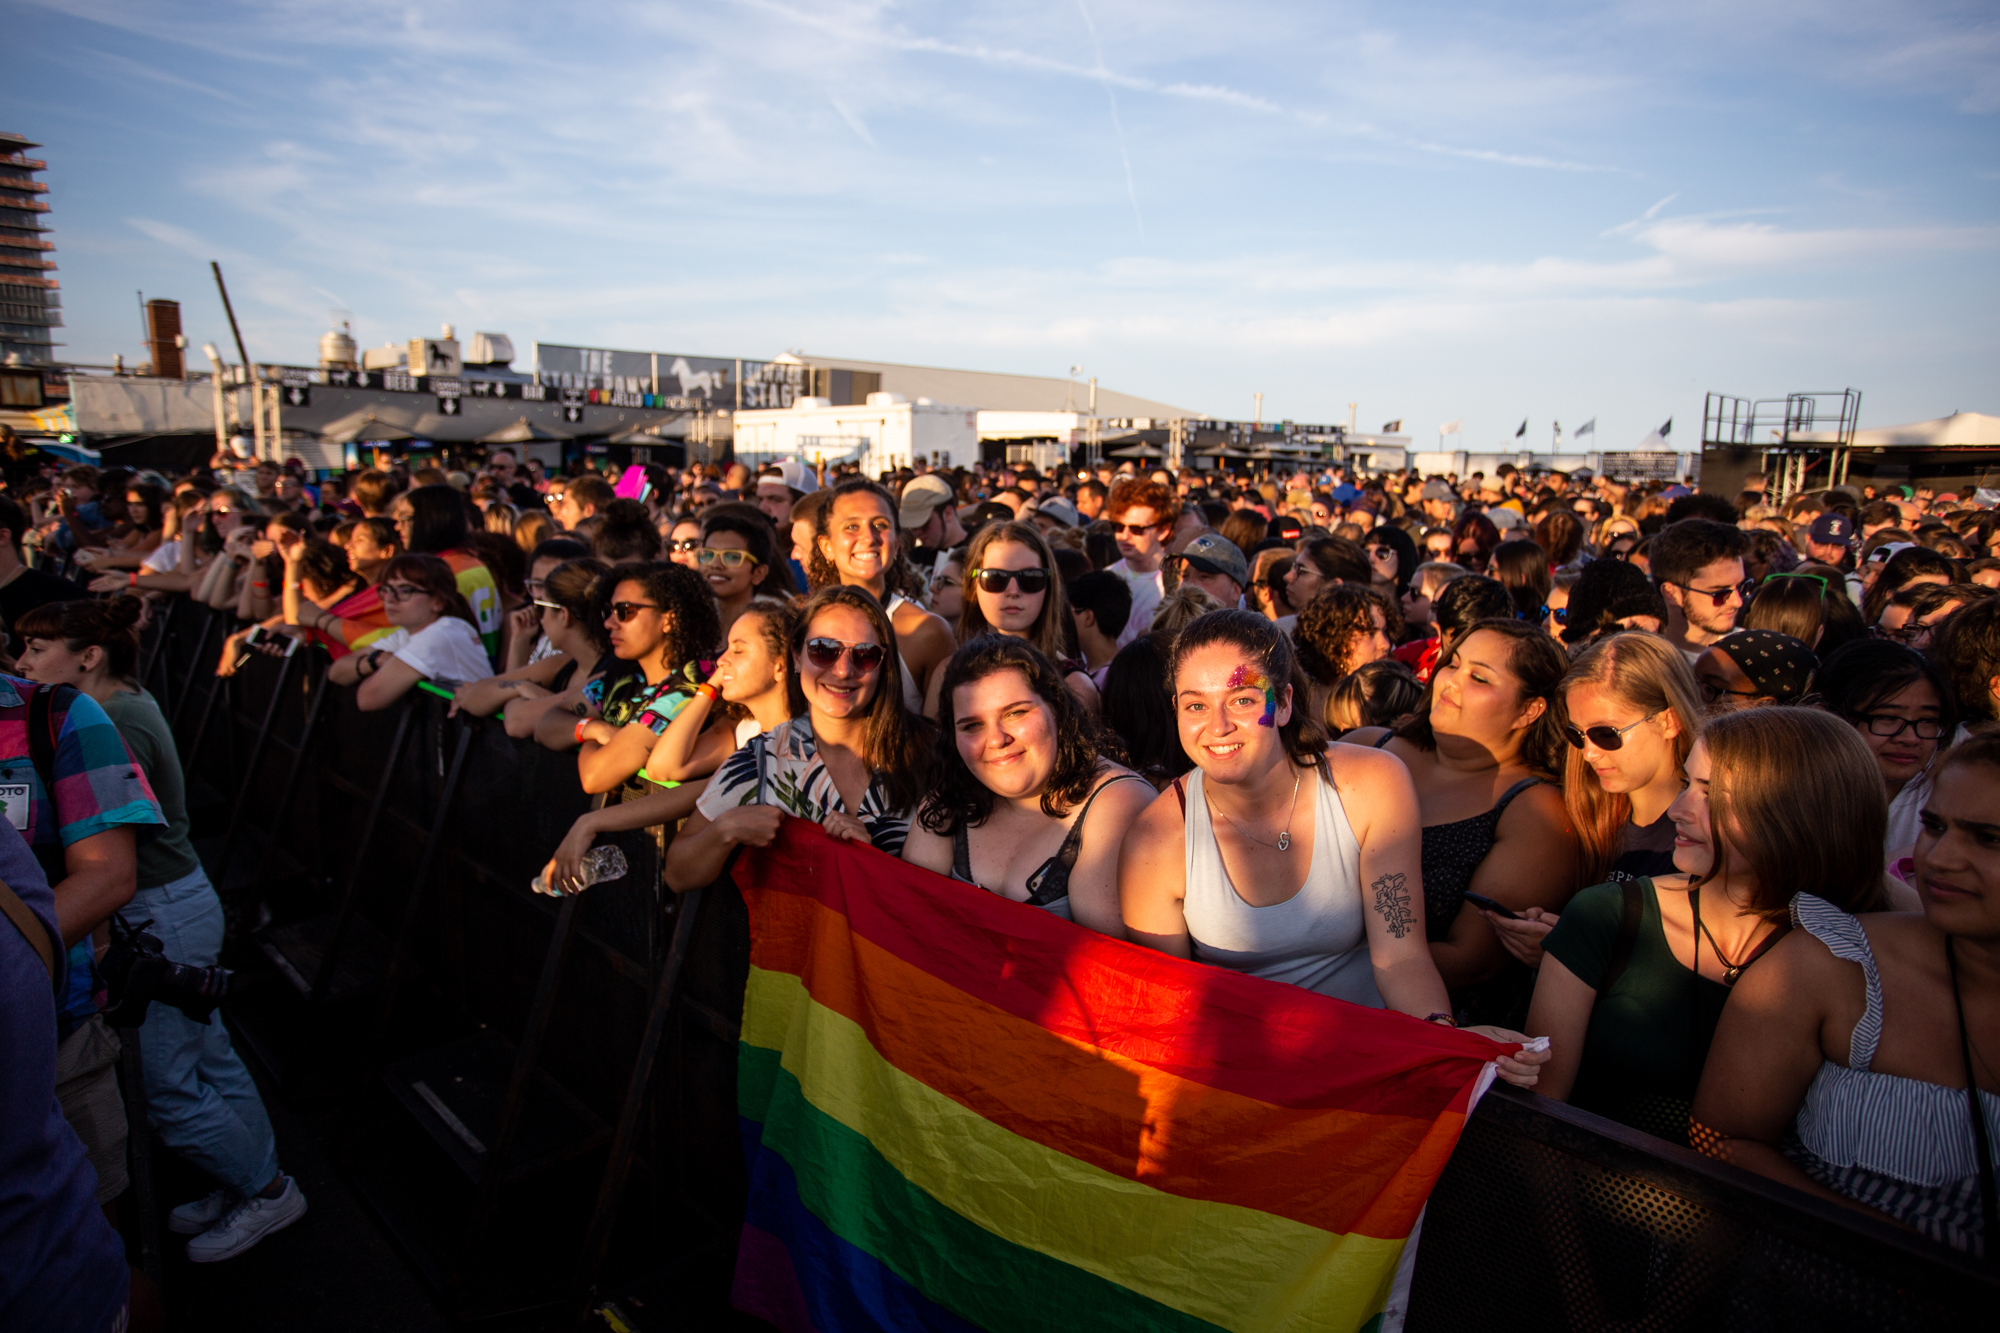 Priscilla McDade, Molly McDade and Brenna Ilg (left to right) wait at the front of the barricade to see Hayley Kiyoko at Shadow of the City festival in Asbury Park, NJ on August 25, 2018.